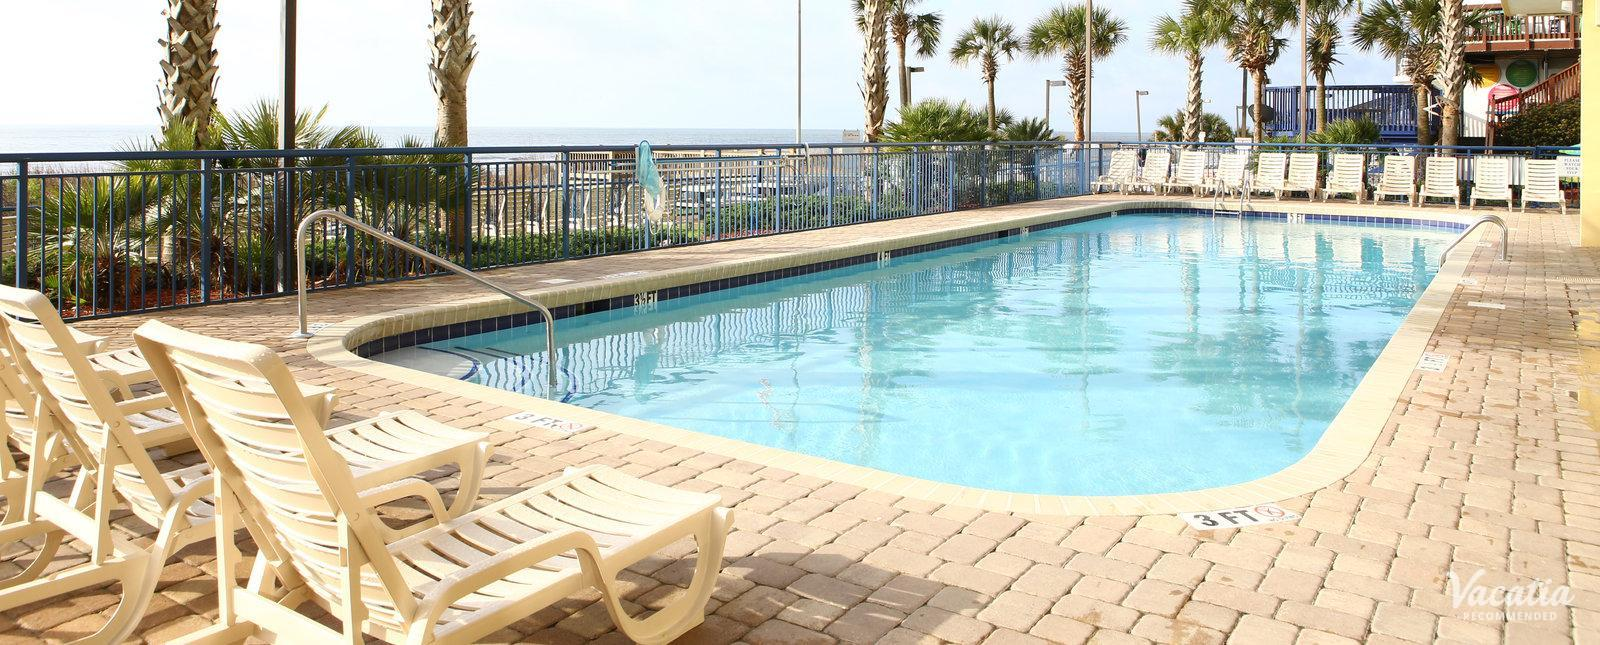 Grand Atlantic Ocean Resort family friendly pool